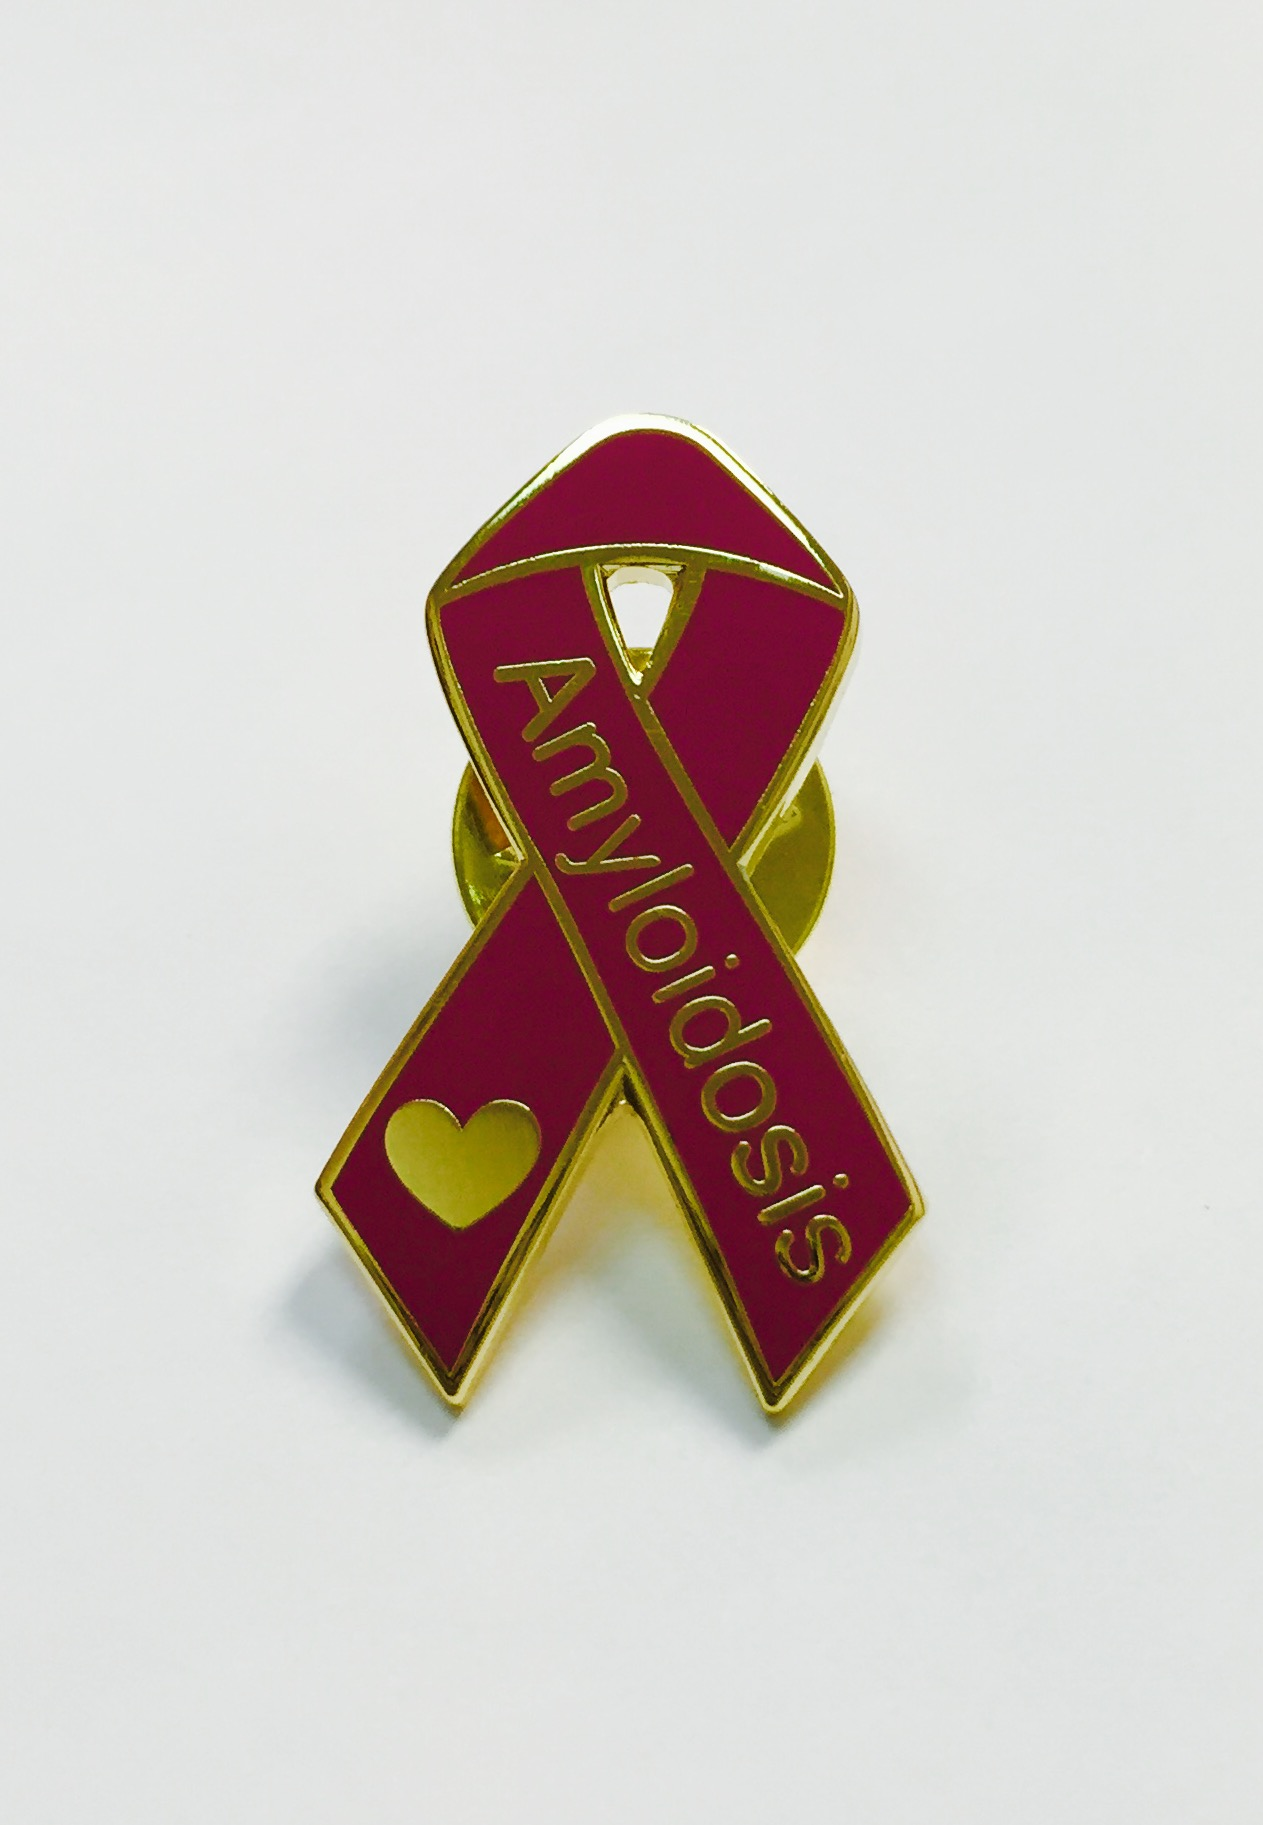 Ribbon Awareness Pin - Amyloidosis Foundation